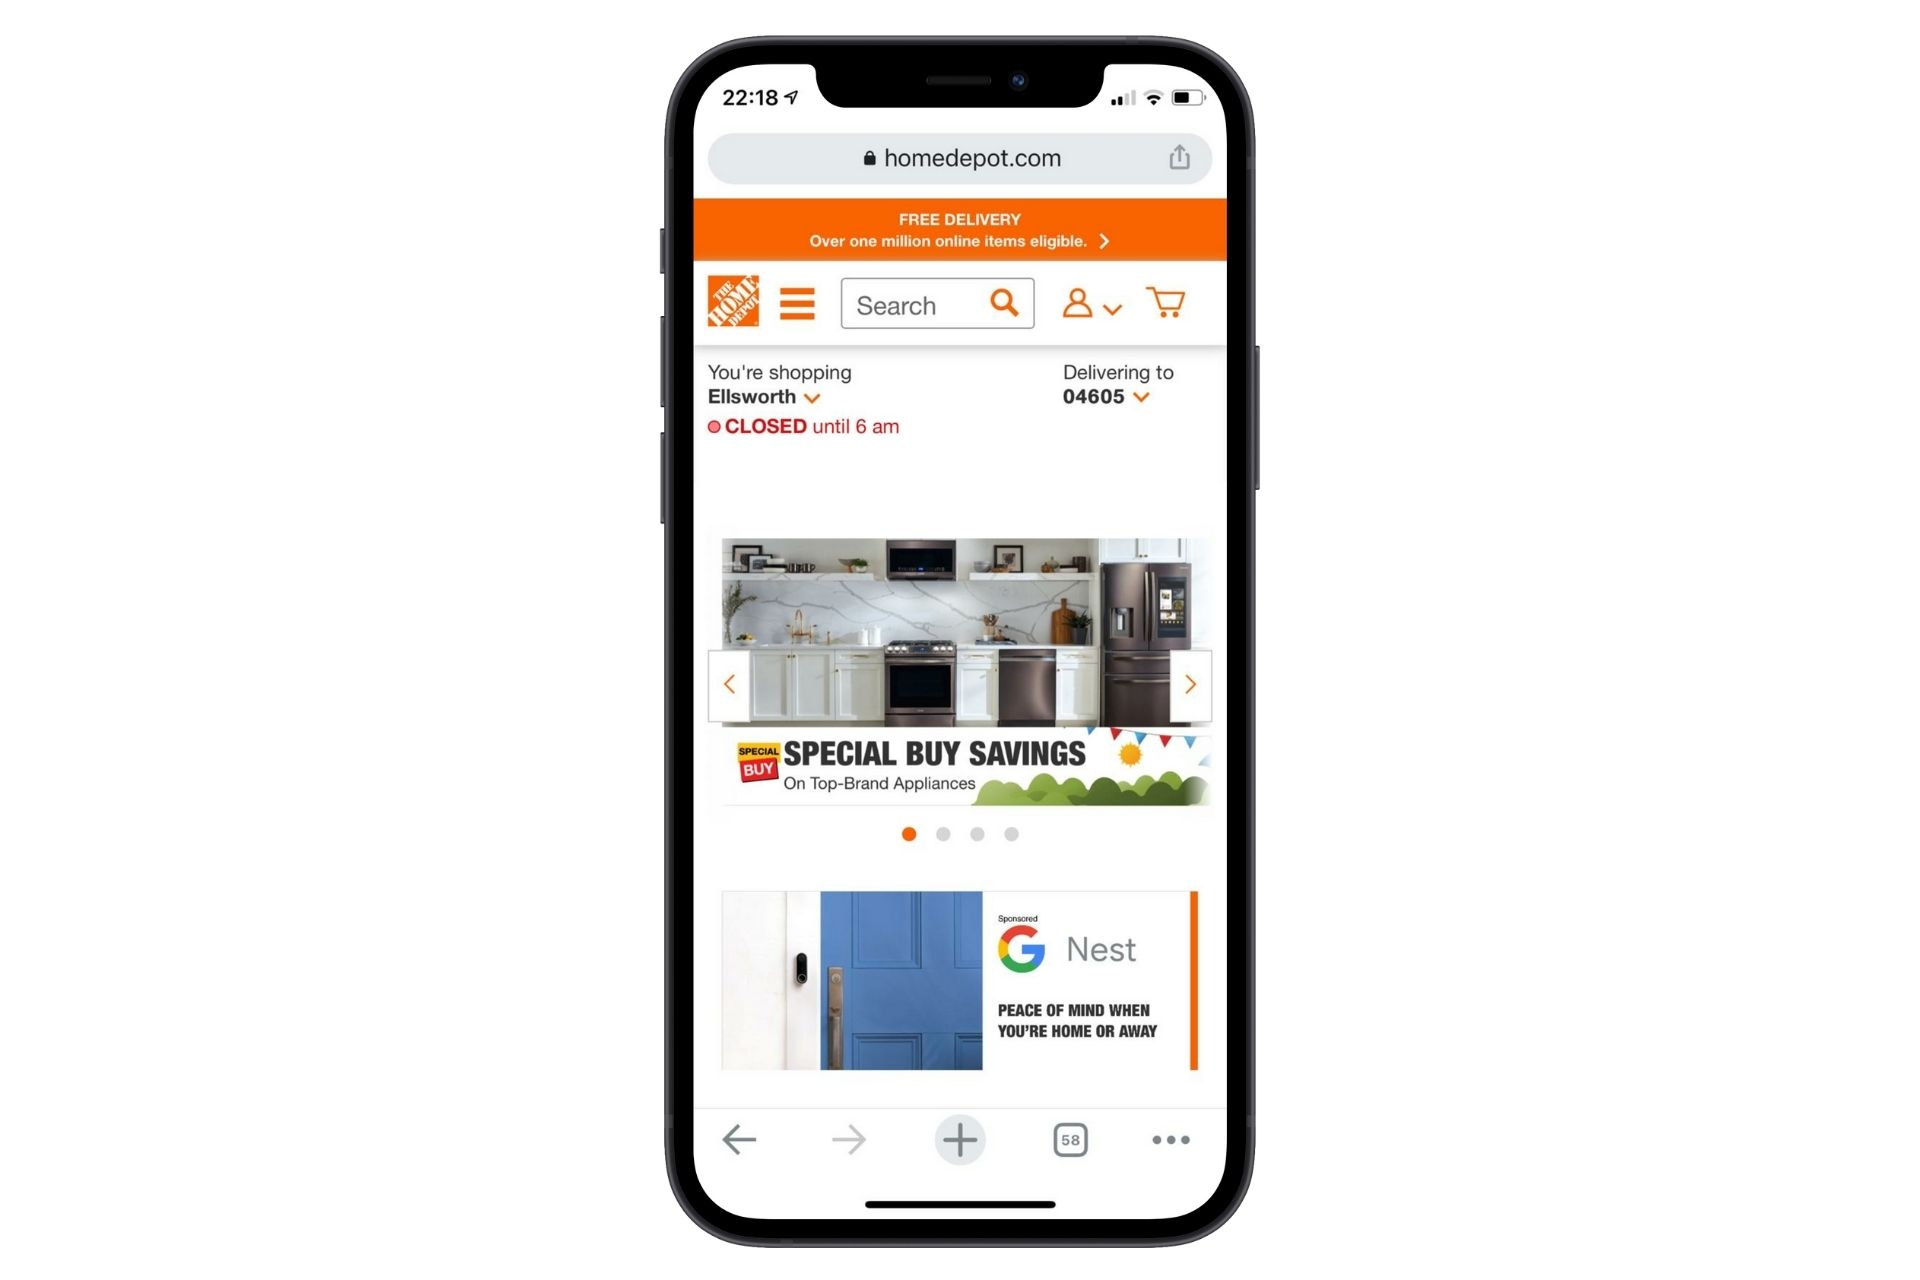 adaptive web design mobile home depot example mobile screen size